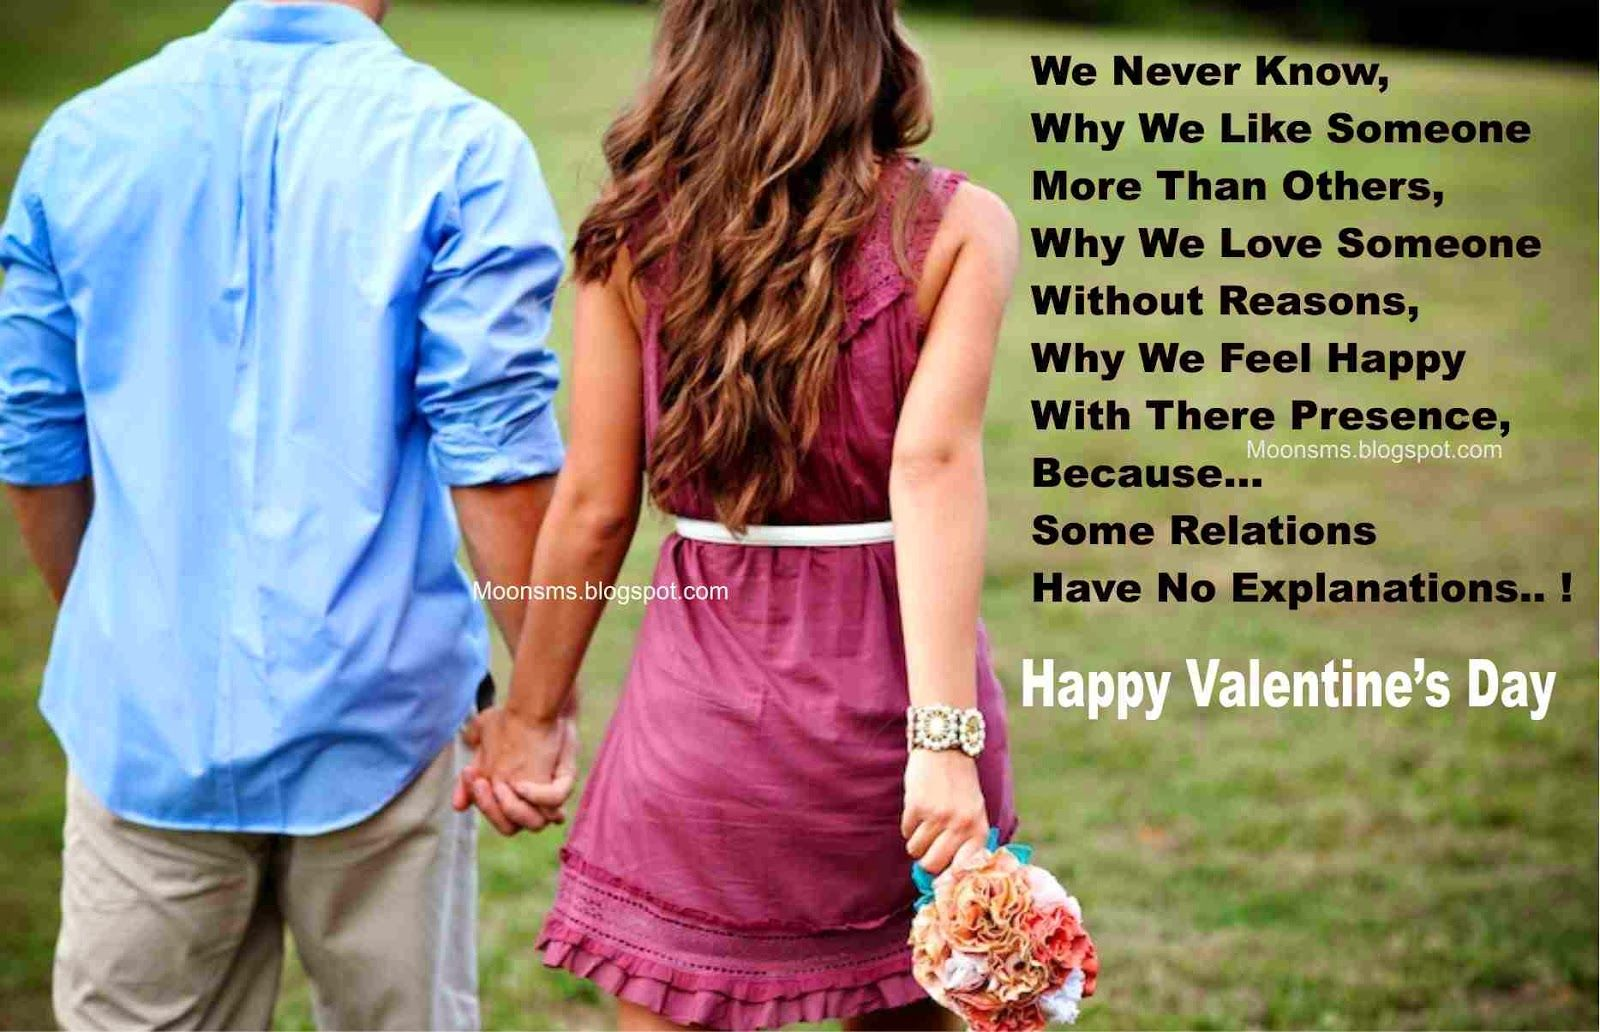 Valentines Day Quotes For Him I Love You Happy Valentine's Day Httpwww.quotesmemequotes